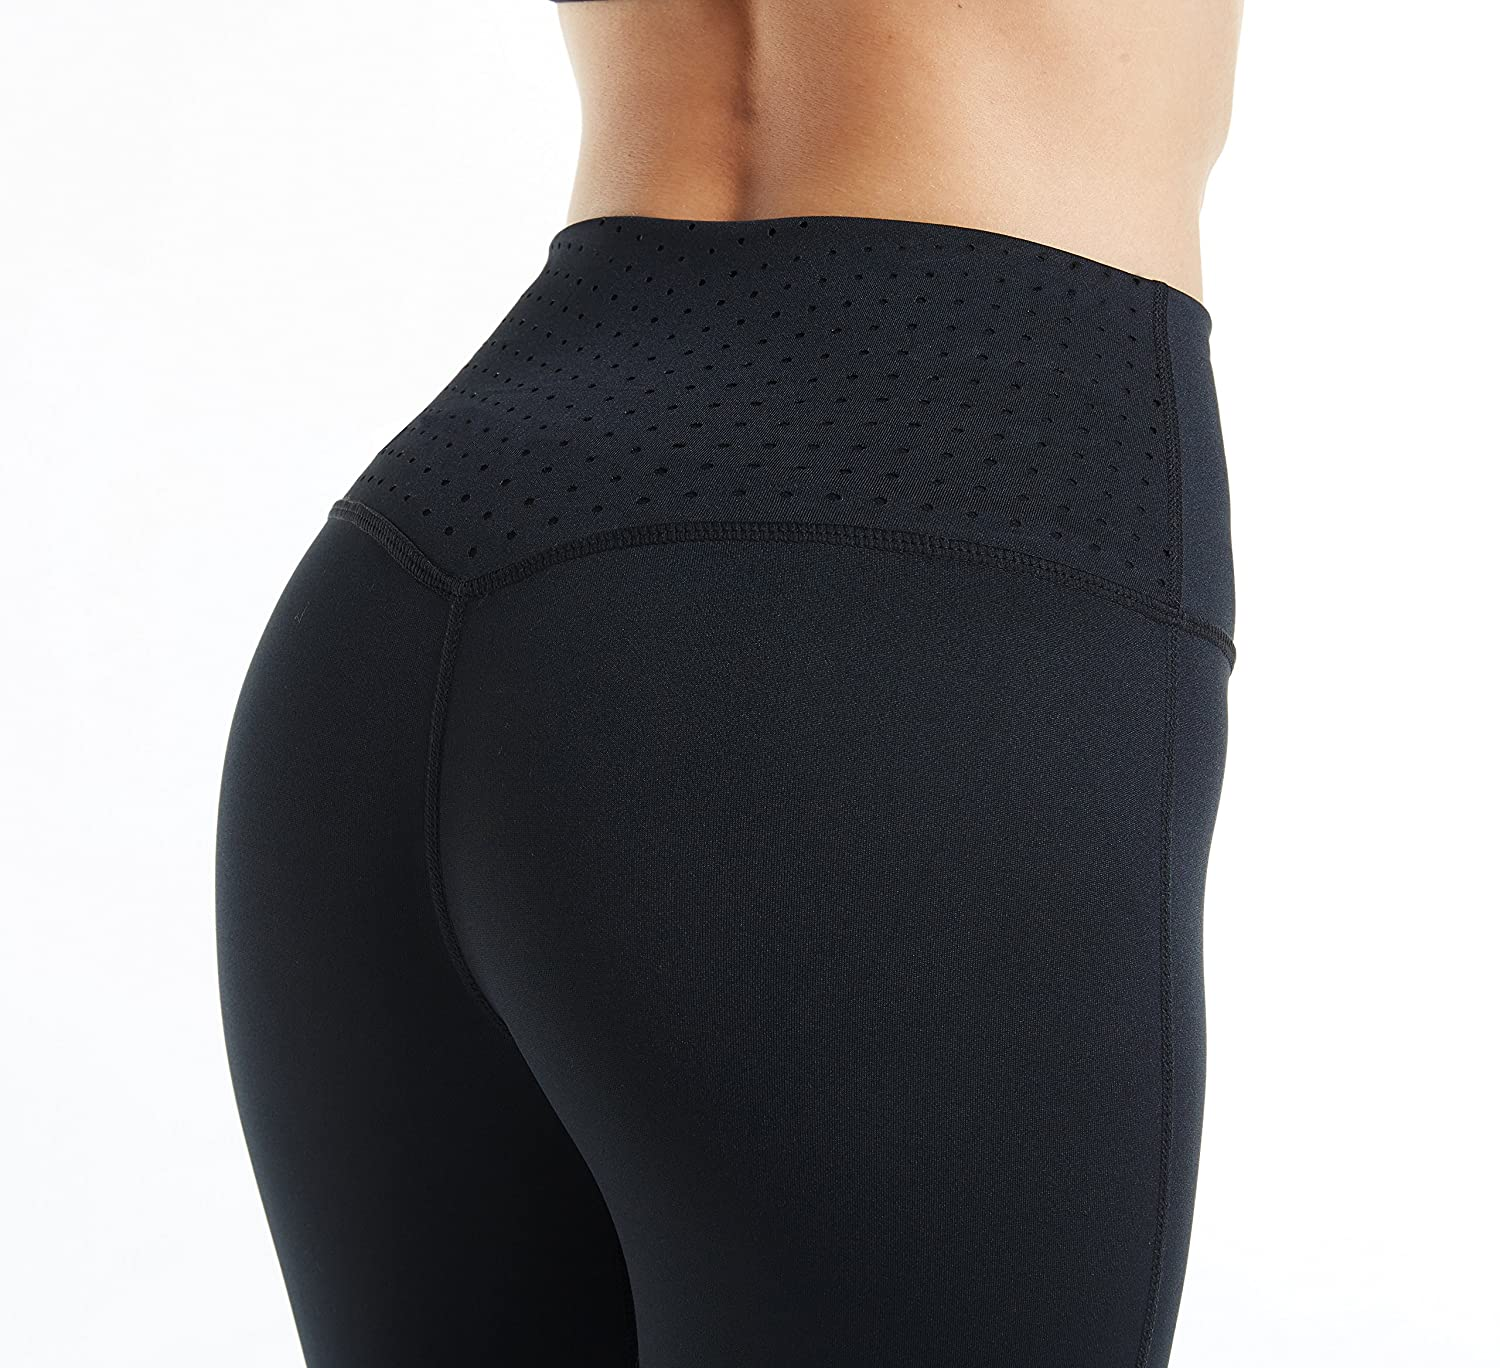 yiveko-tight-(s-xl)-mesh-panels-yoga-pants-stretchy-women-leggings-gym-fitness-workout-non-see-through by yiveko